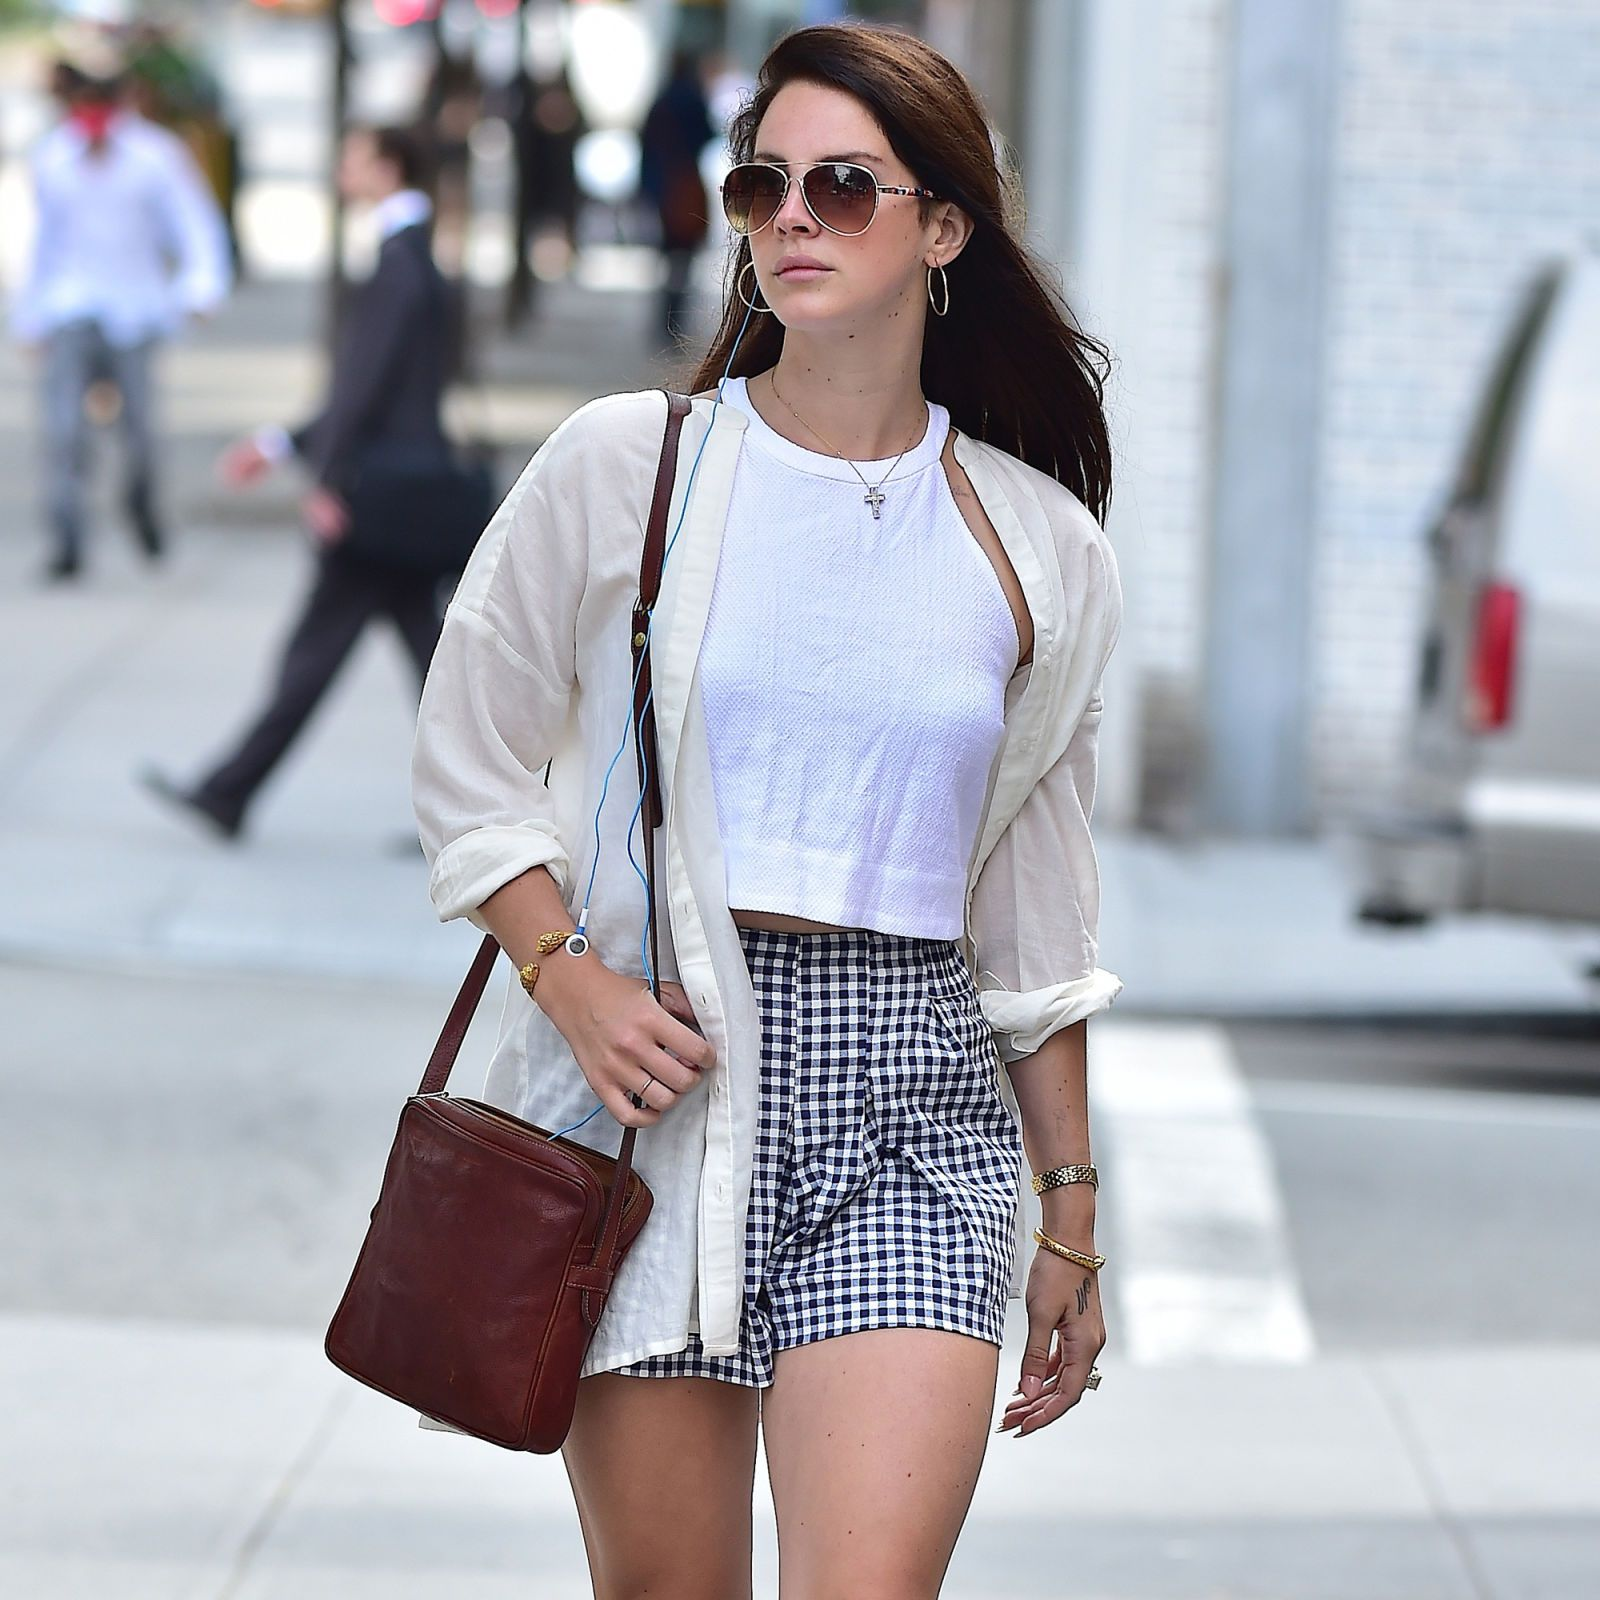 Lana Del Rey in Soho on Sept.18, 2014 in New York City.